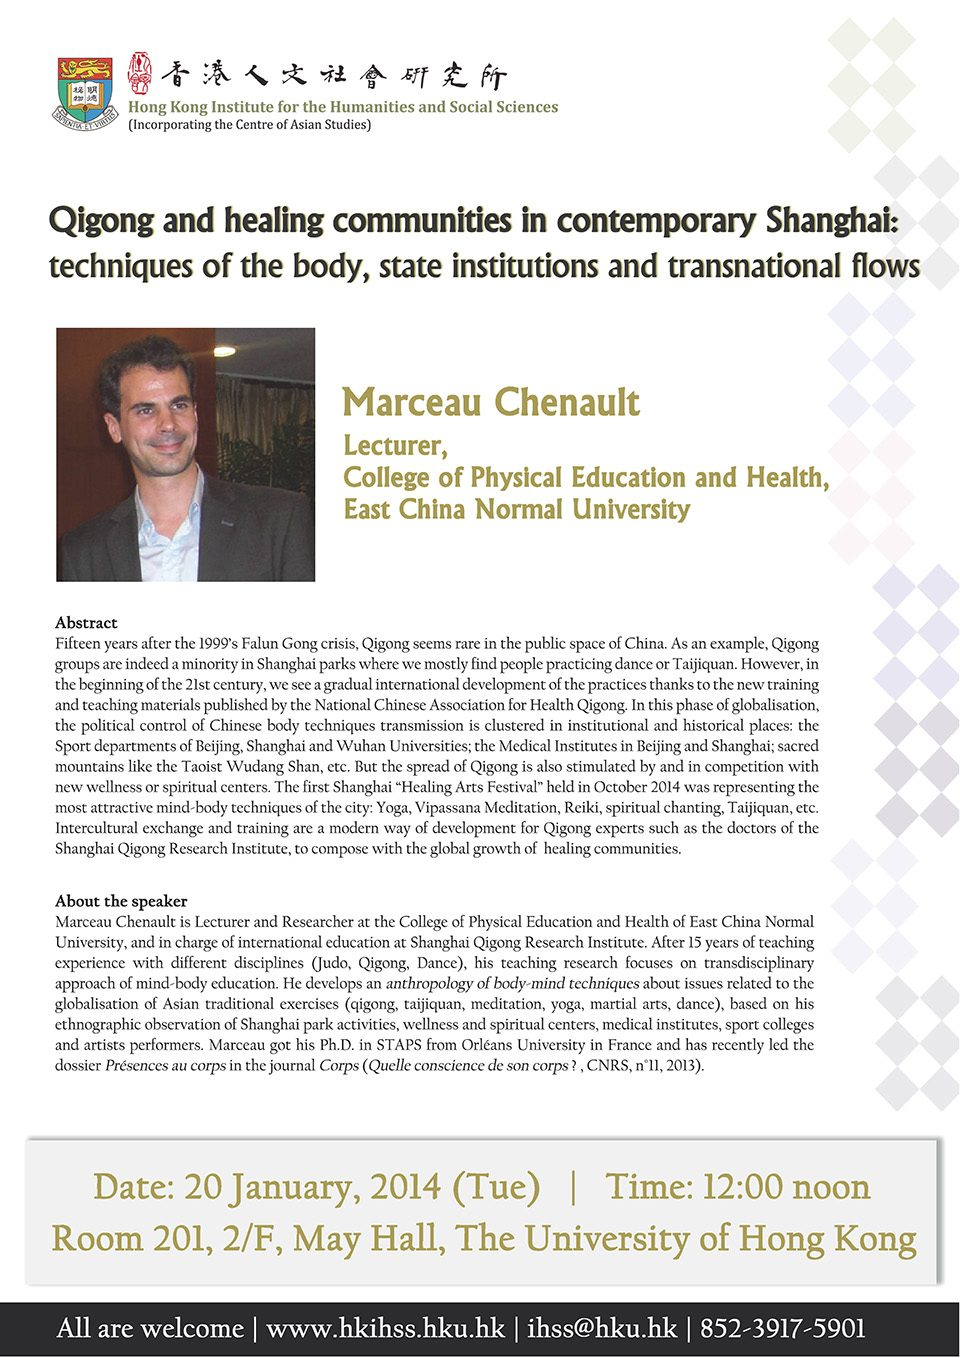 """seminar on """"Seminar onQigong and Healing Communities in Contemporary Shanghai: Techniques of the Body, State Institutions and Transnational Flows"""" by Dr. Marceau Chenault (January 20, 2015)"""